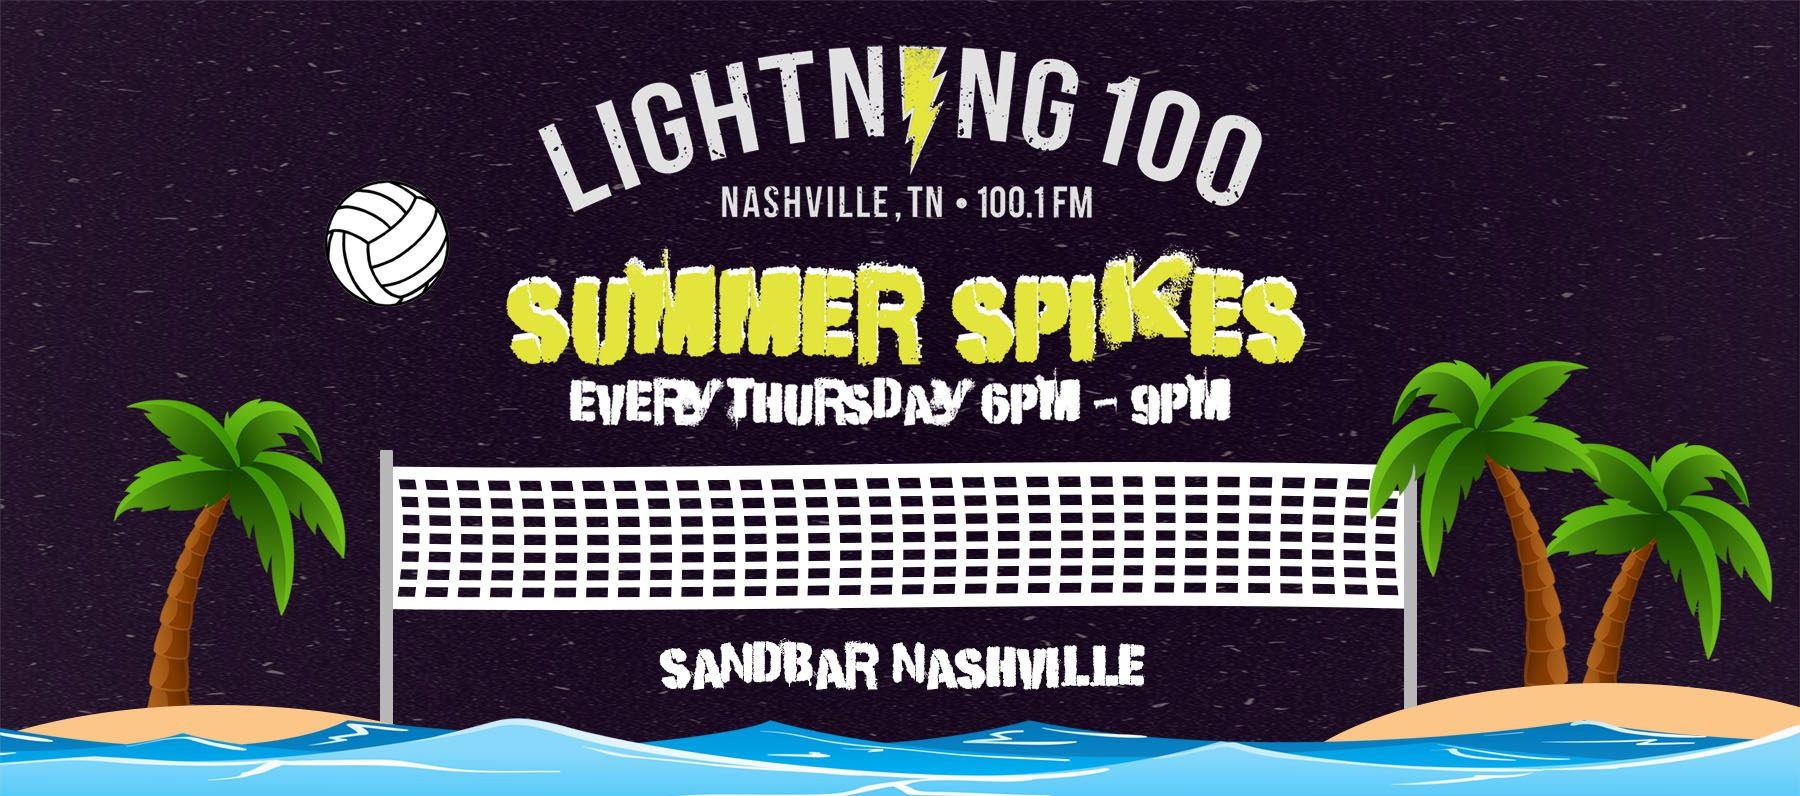 Lightning 100 Summer Spikes